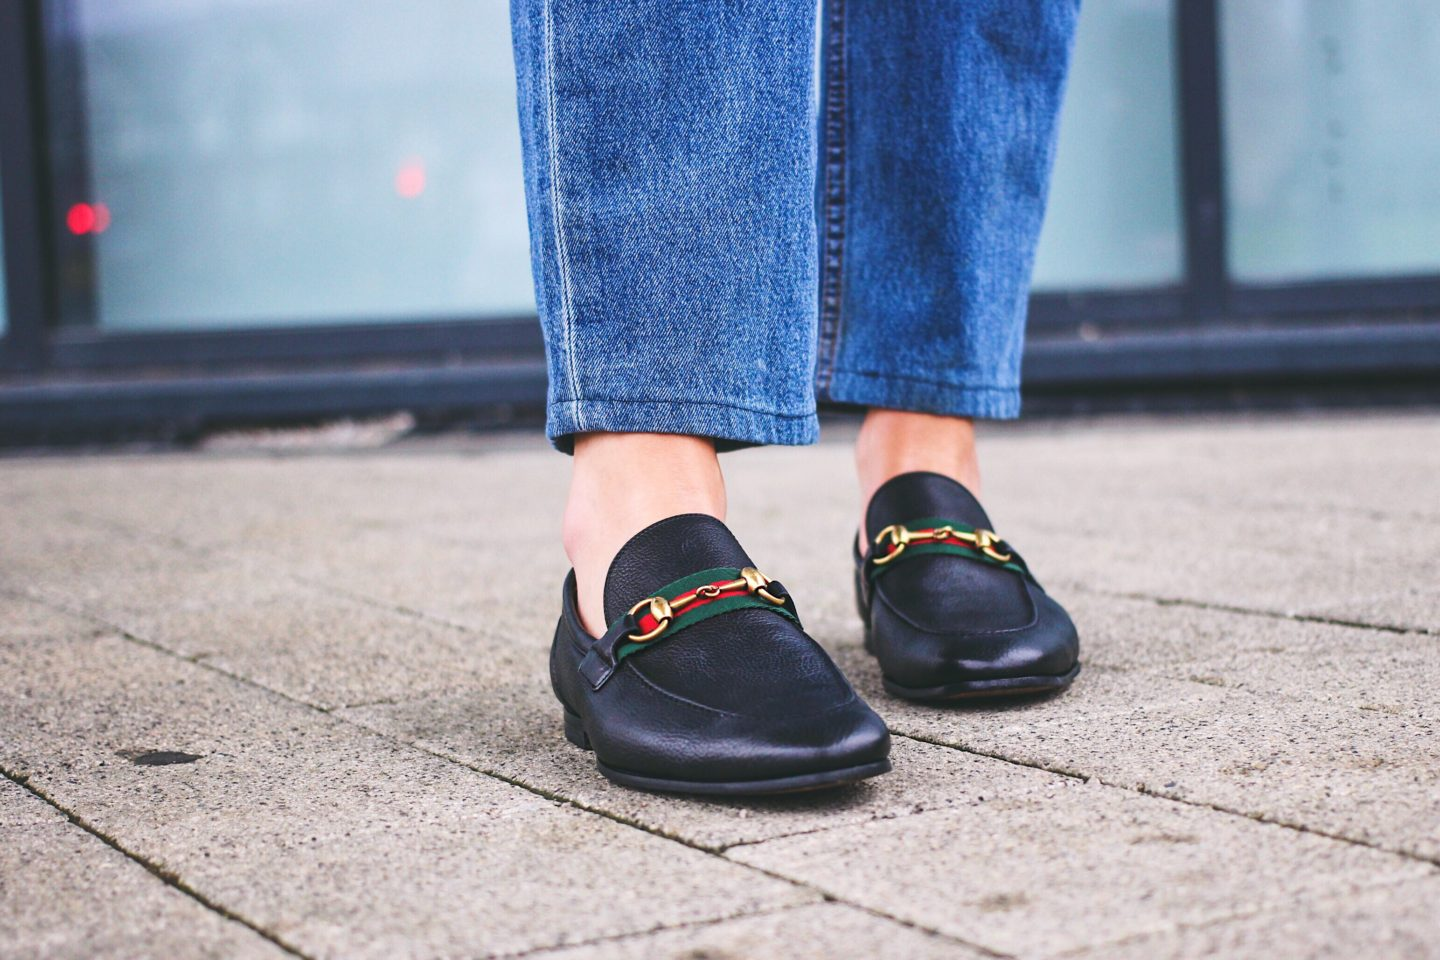 Are Gucci Loafers Comfy